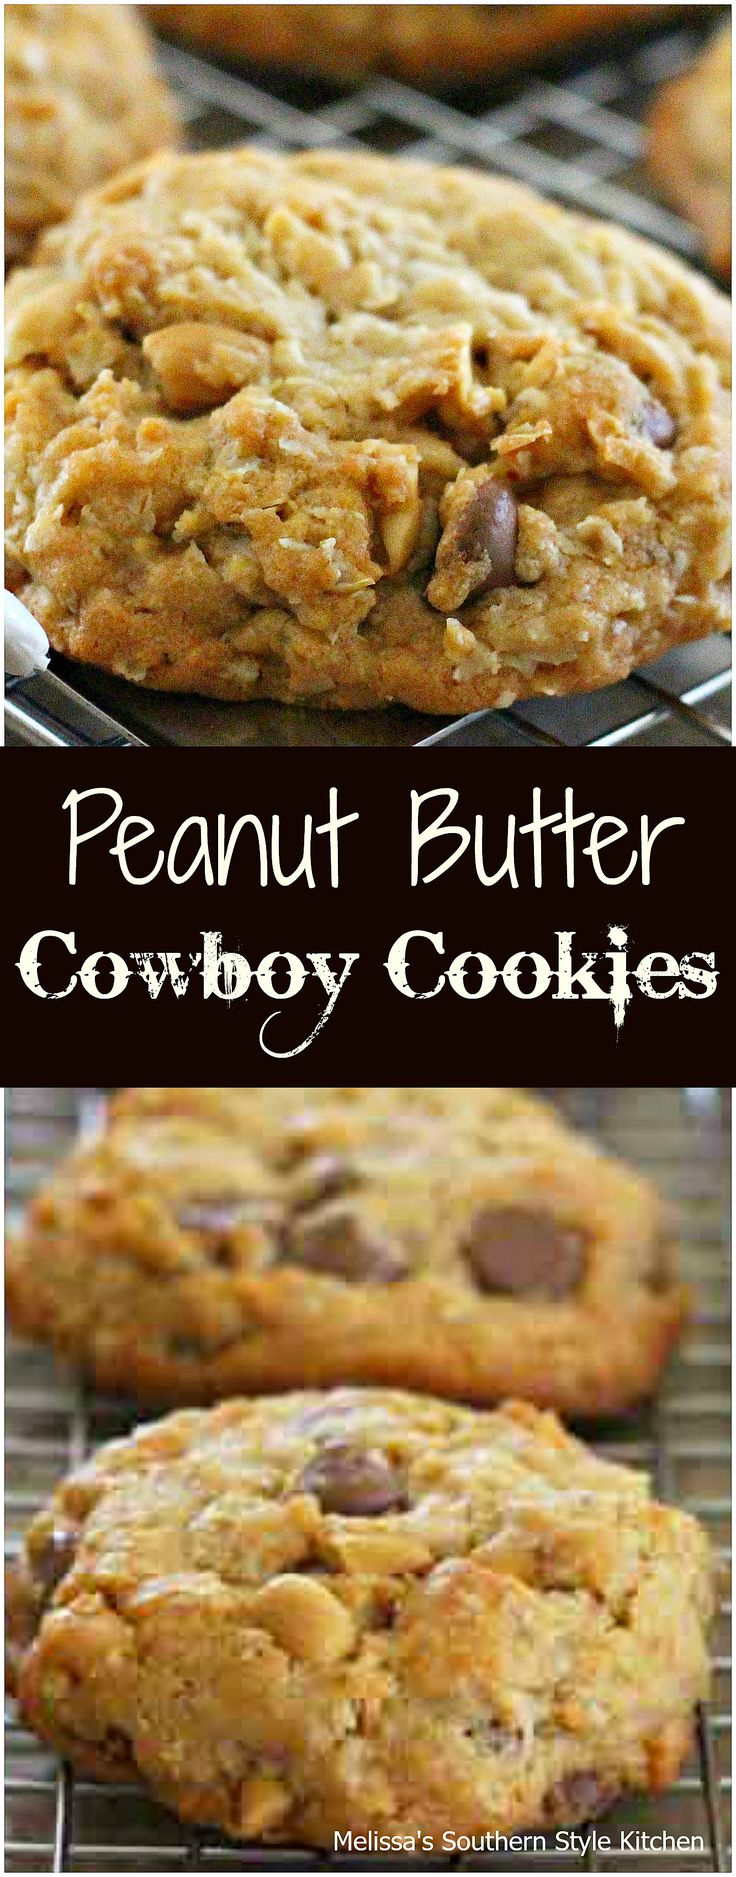 Peanut Butter Cowboy Cookies – Ive never outgrown the thrill of warm gooey ch